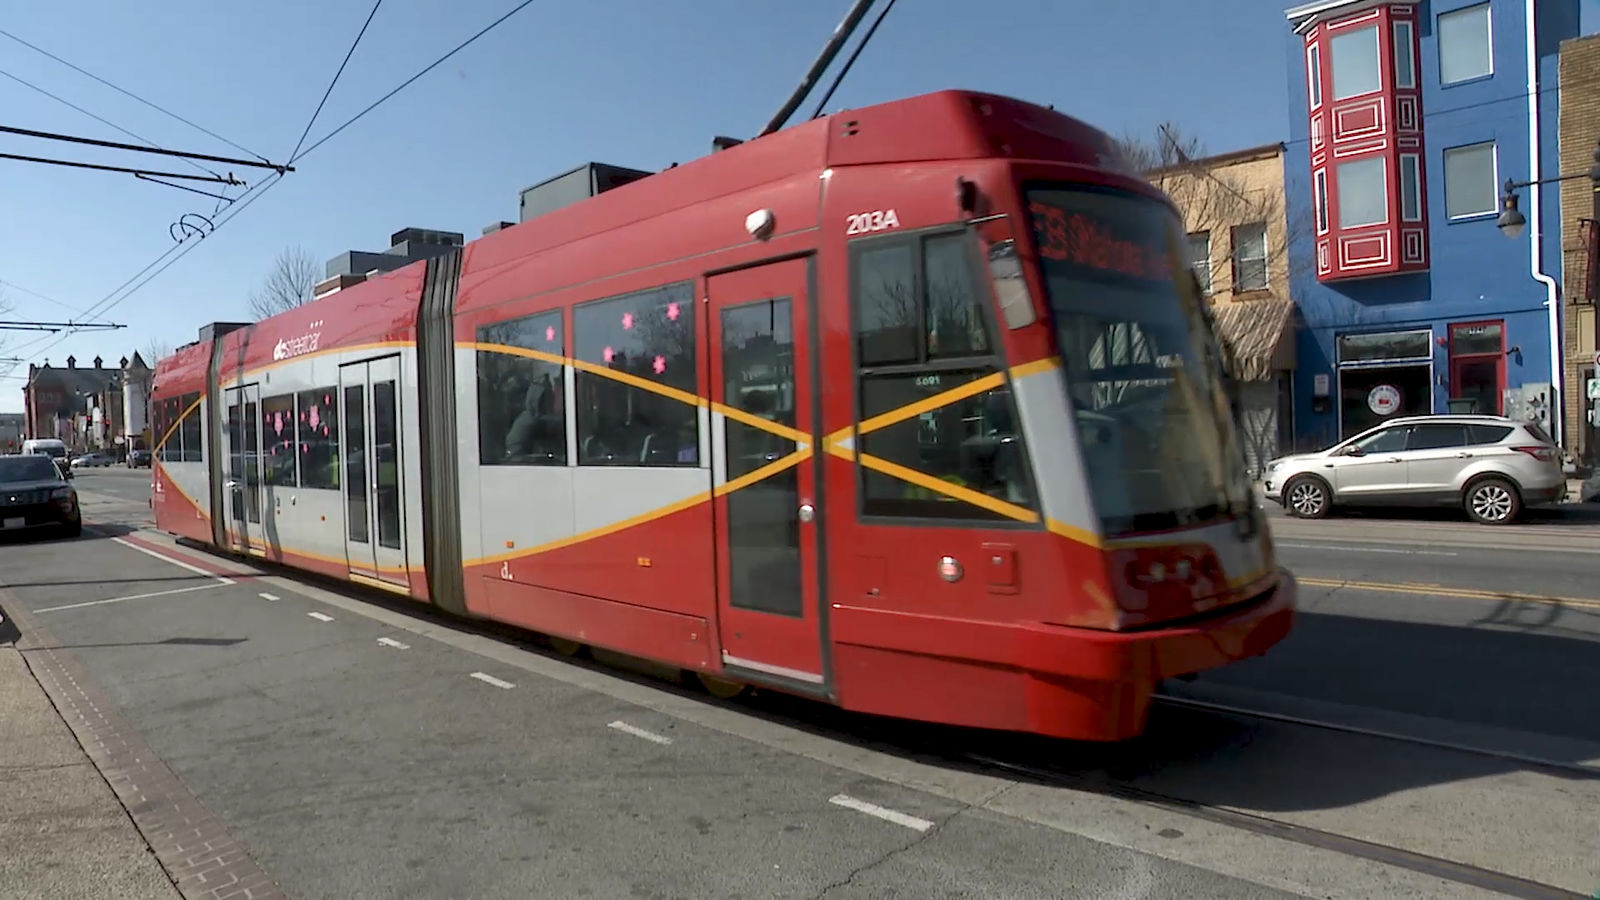 DC's streetcar travels down H Street in the nation's capital (Photo: Alex Brauer, Sinclair Broadcast Group)